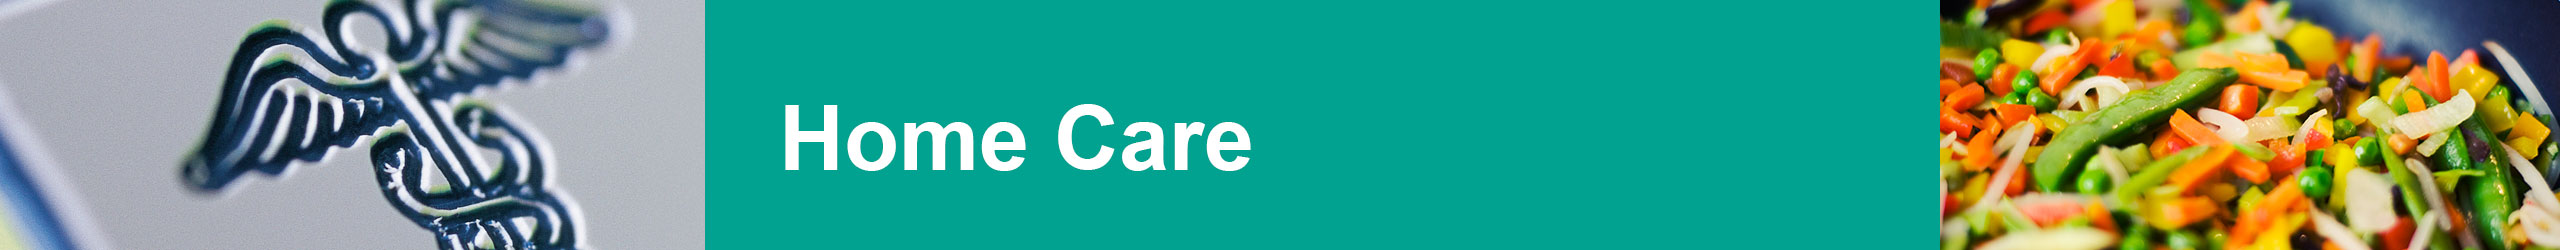 homecare header